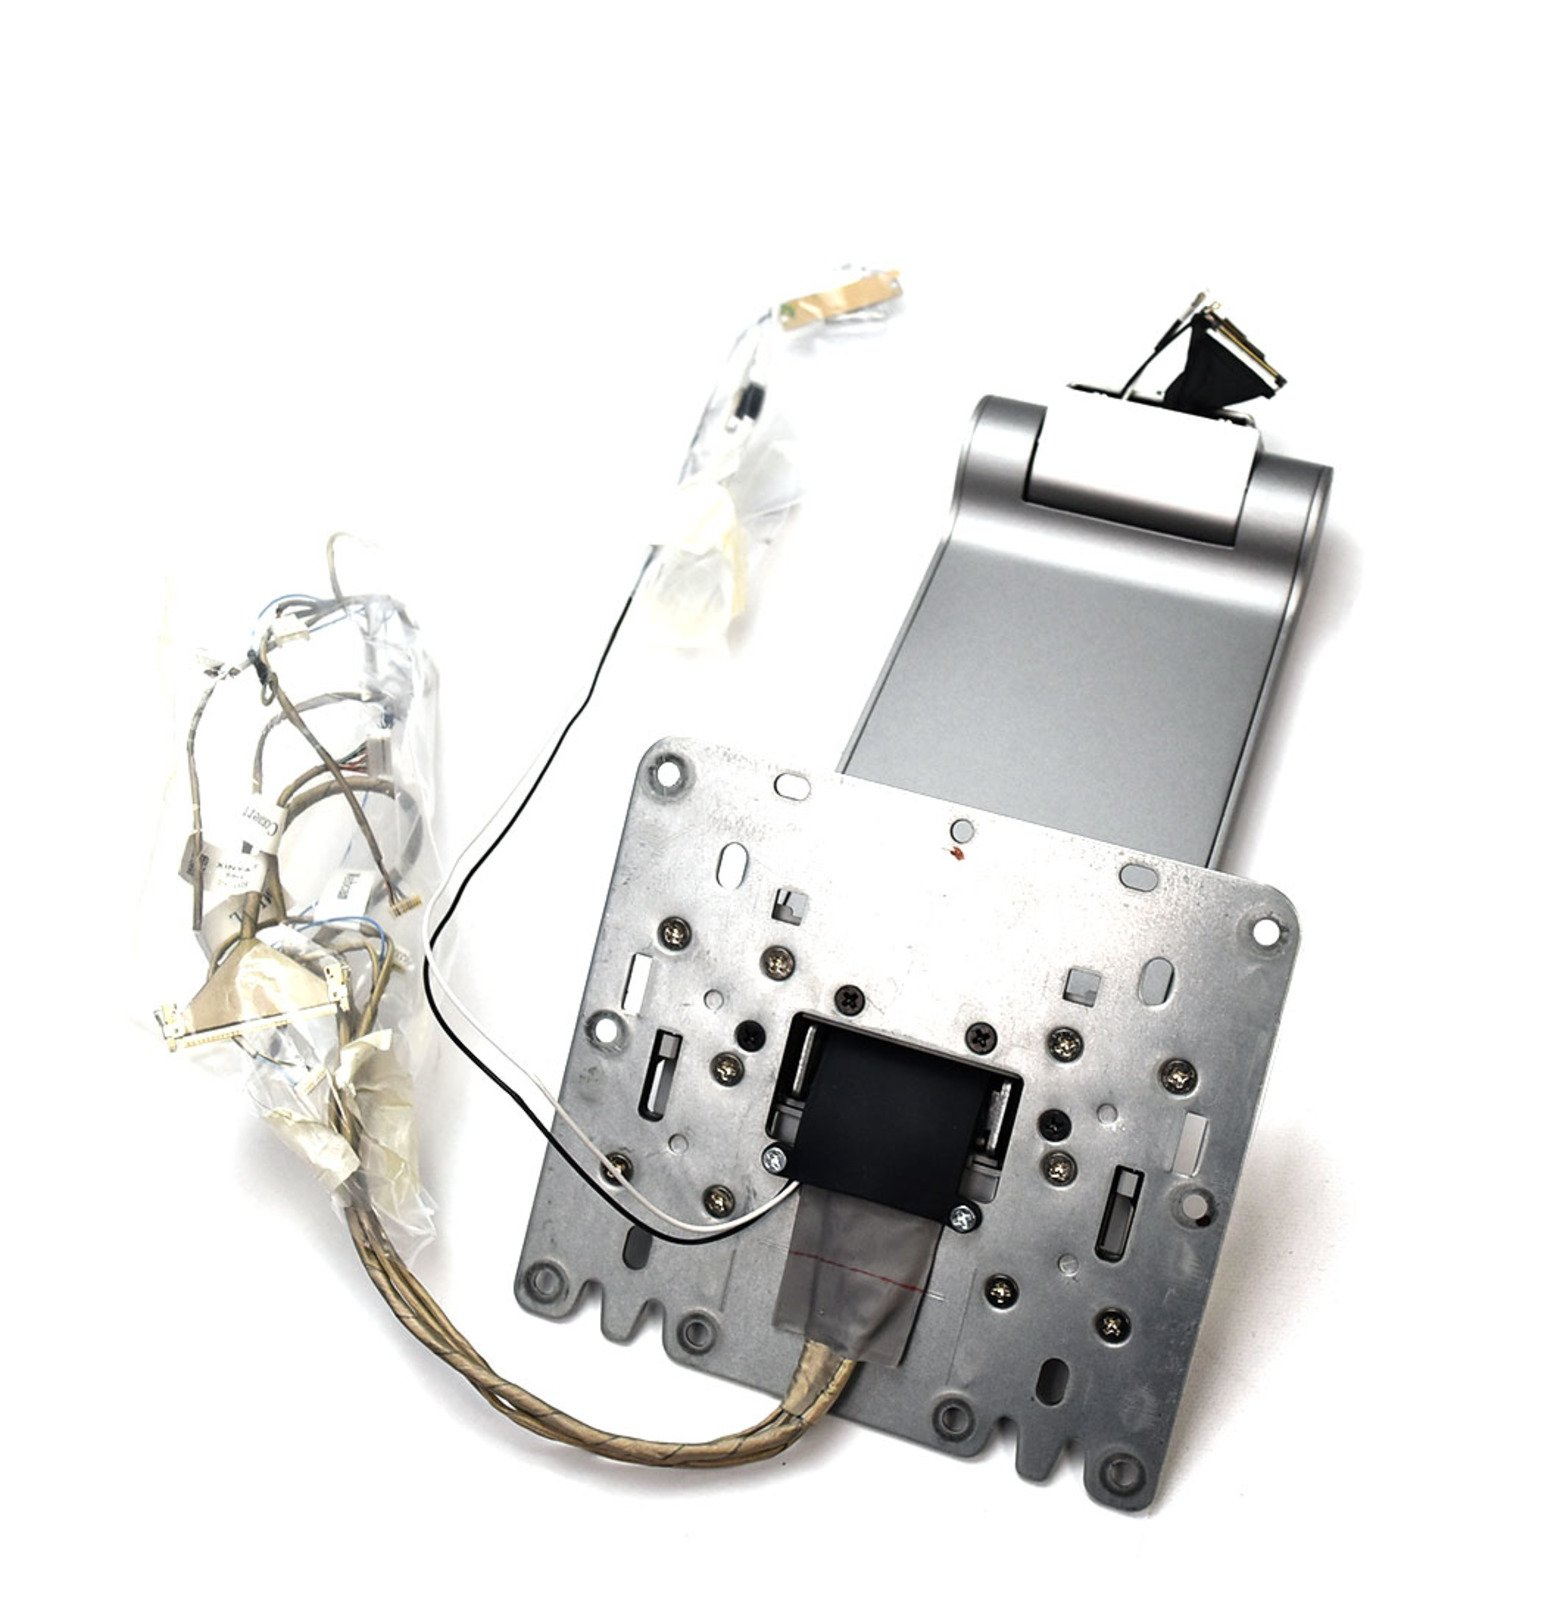 New DD5WF Genuine OEM Dell Base Stand Assembly w/Mic/R-L Pwr+OSD Webcam Convert LVDS Touch Ant-R/L Heavy Base Plate Silver